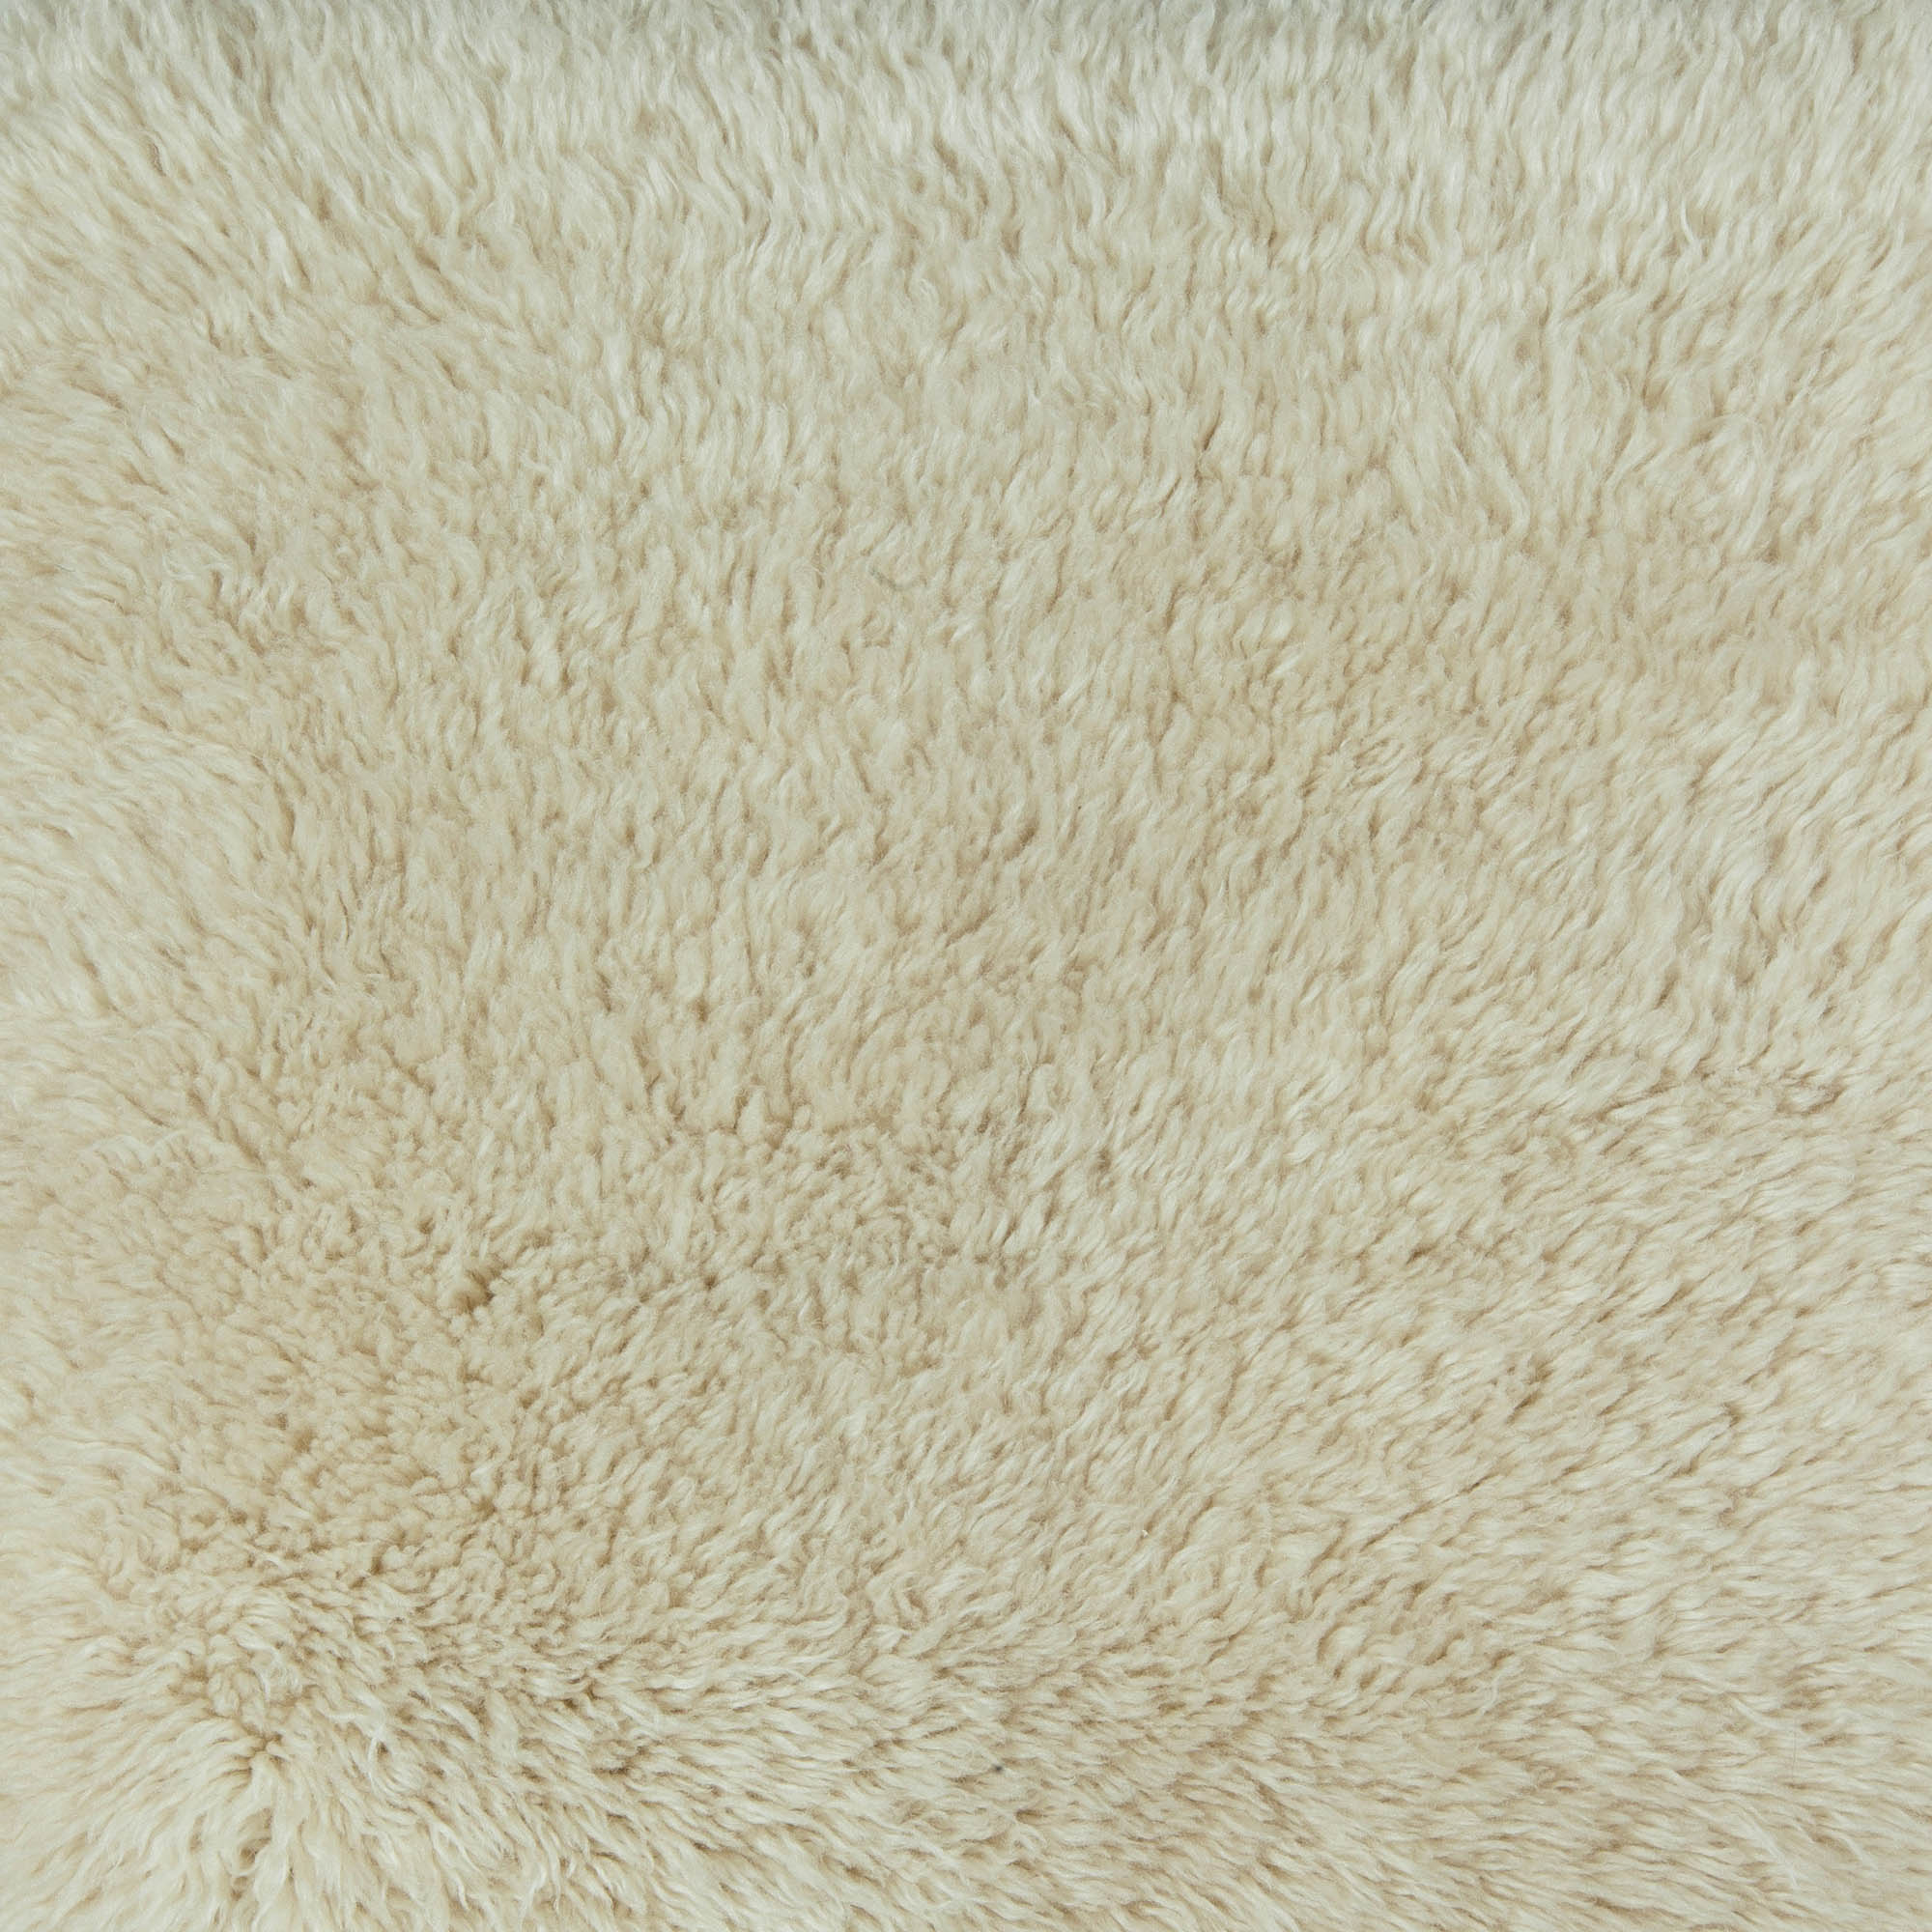 Shag Custom Rug Design S10105 S10105